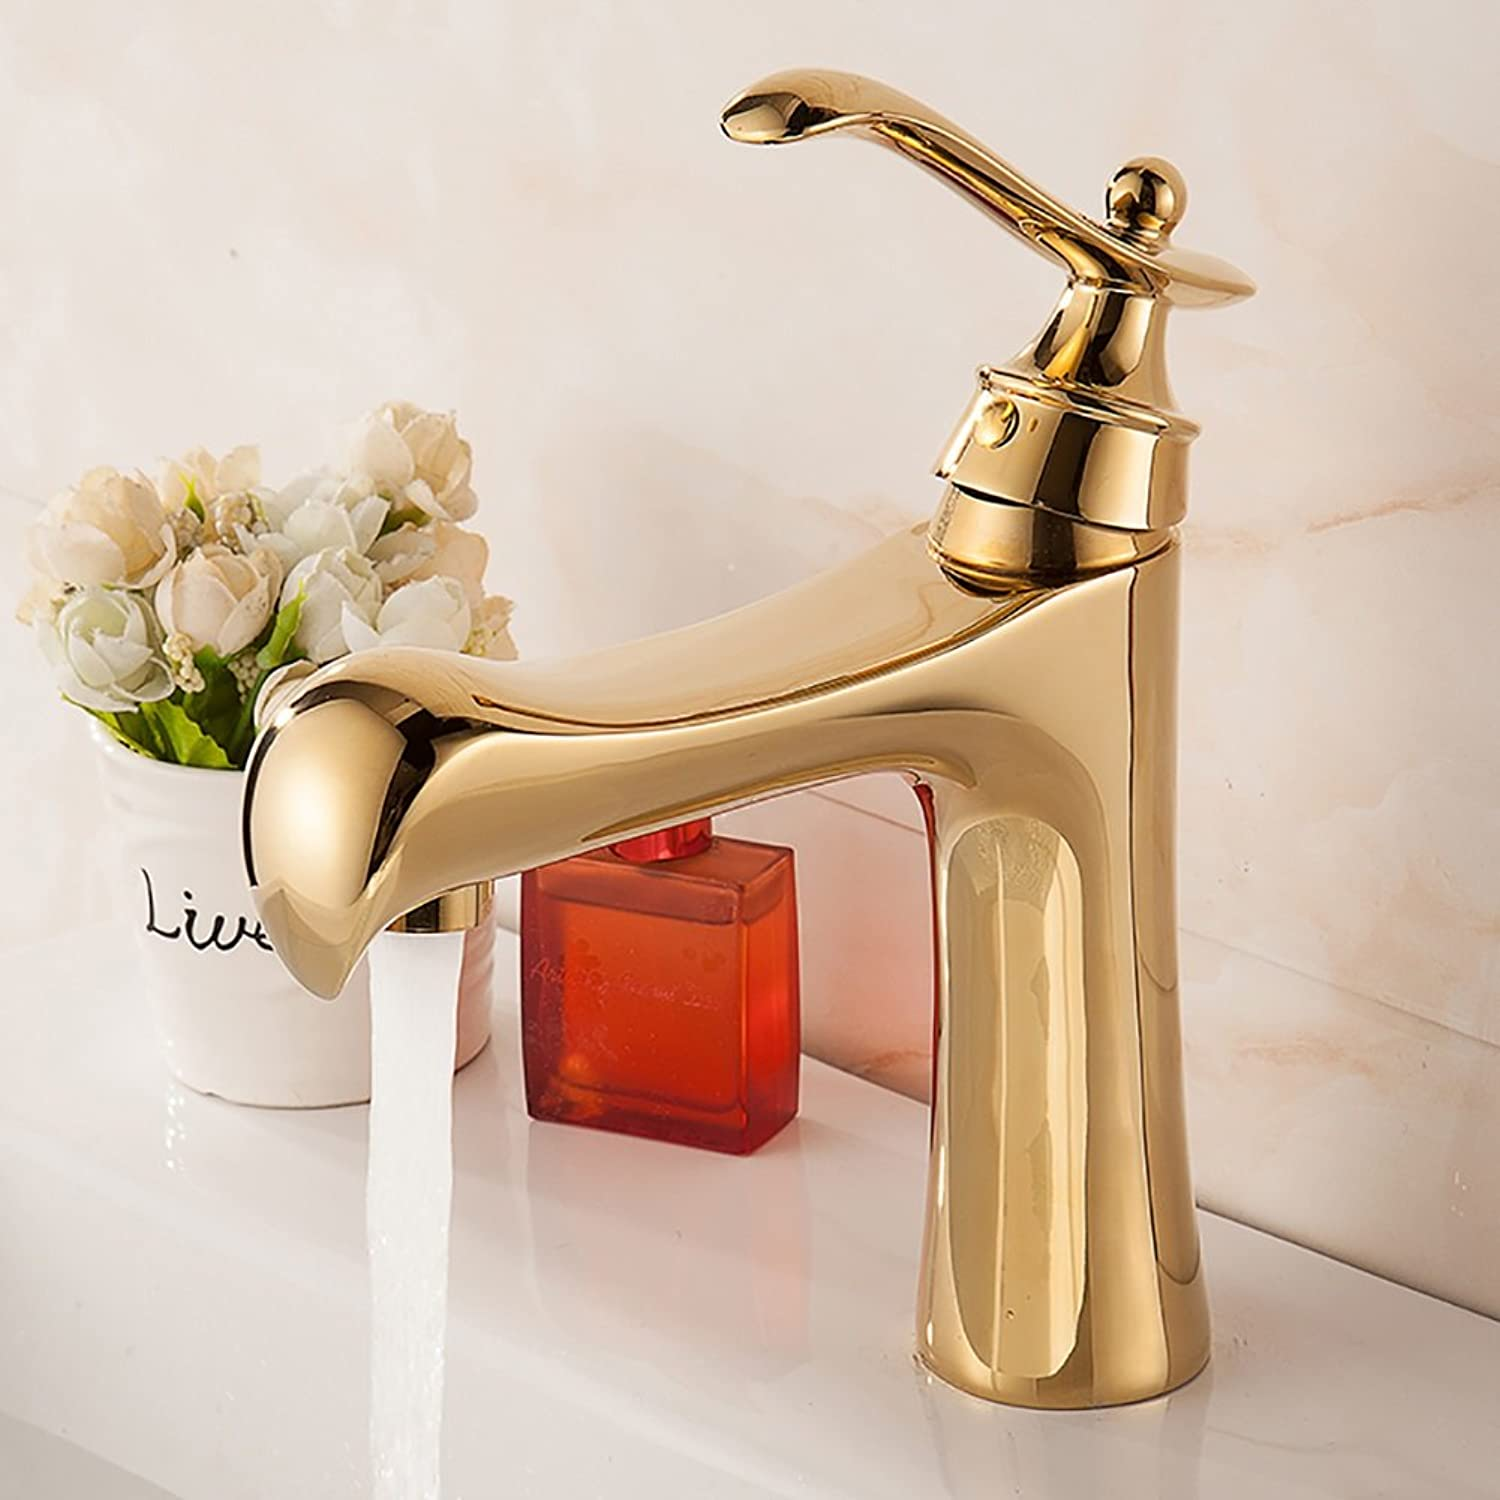 ZJM Basin Faucet Single Hole All Copper Single Handle Hot And Cold Water Mixer golden